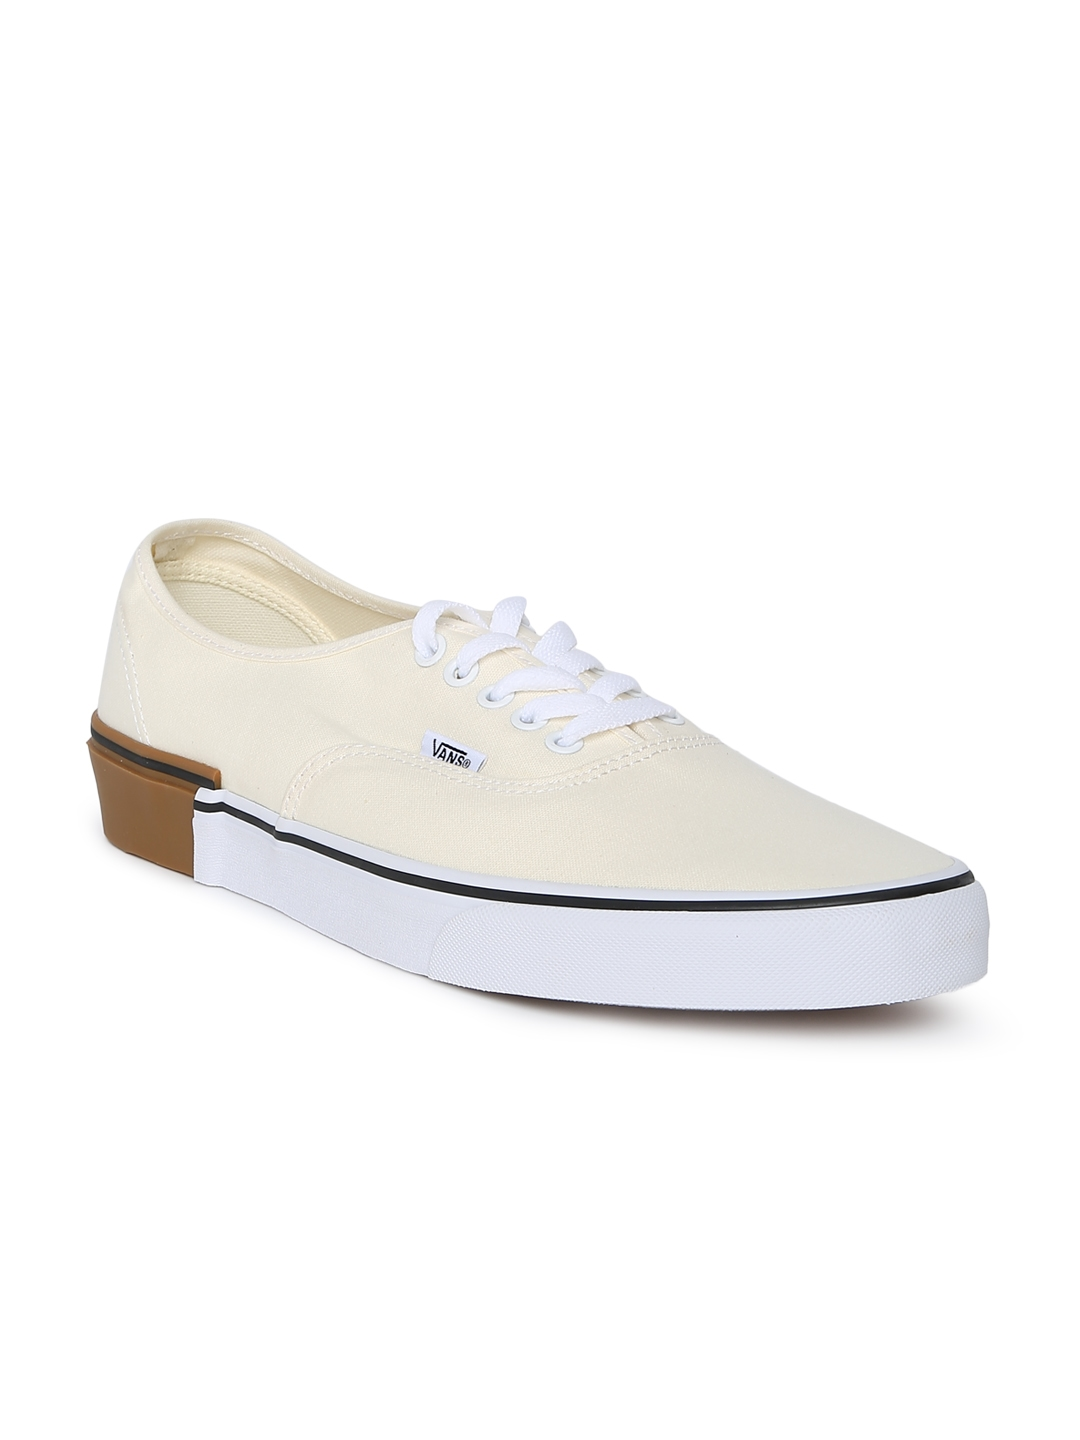 b9cd6ee799c6 Buy Vans Unisex Off White Sneakers - Casual Shoes for Unisex 7665185 ...